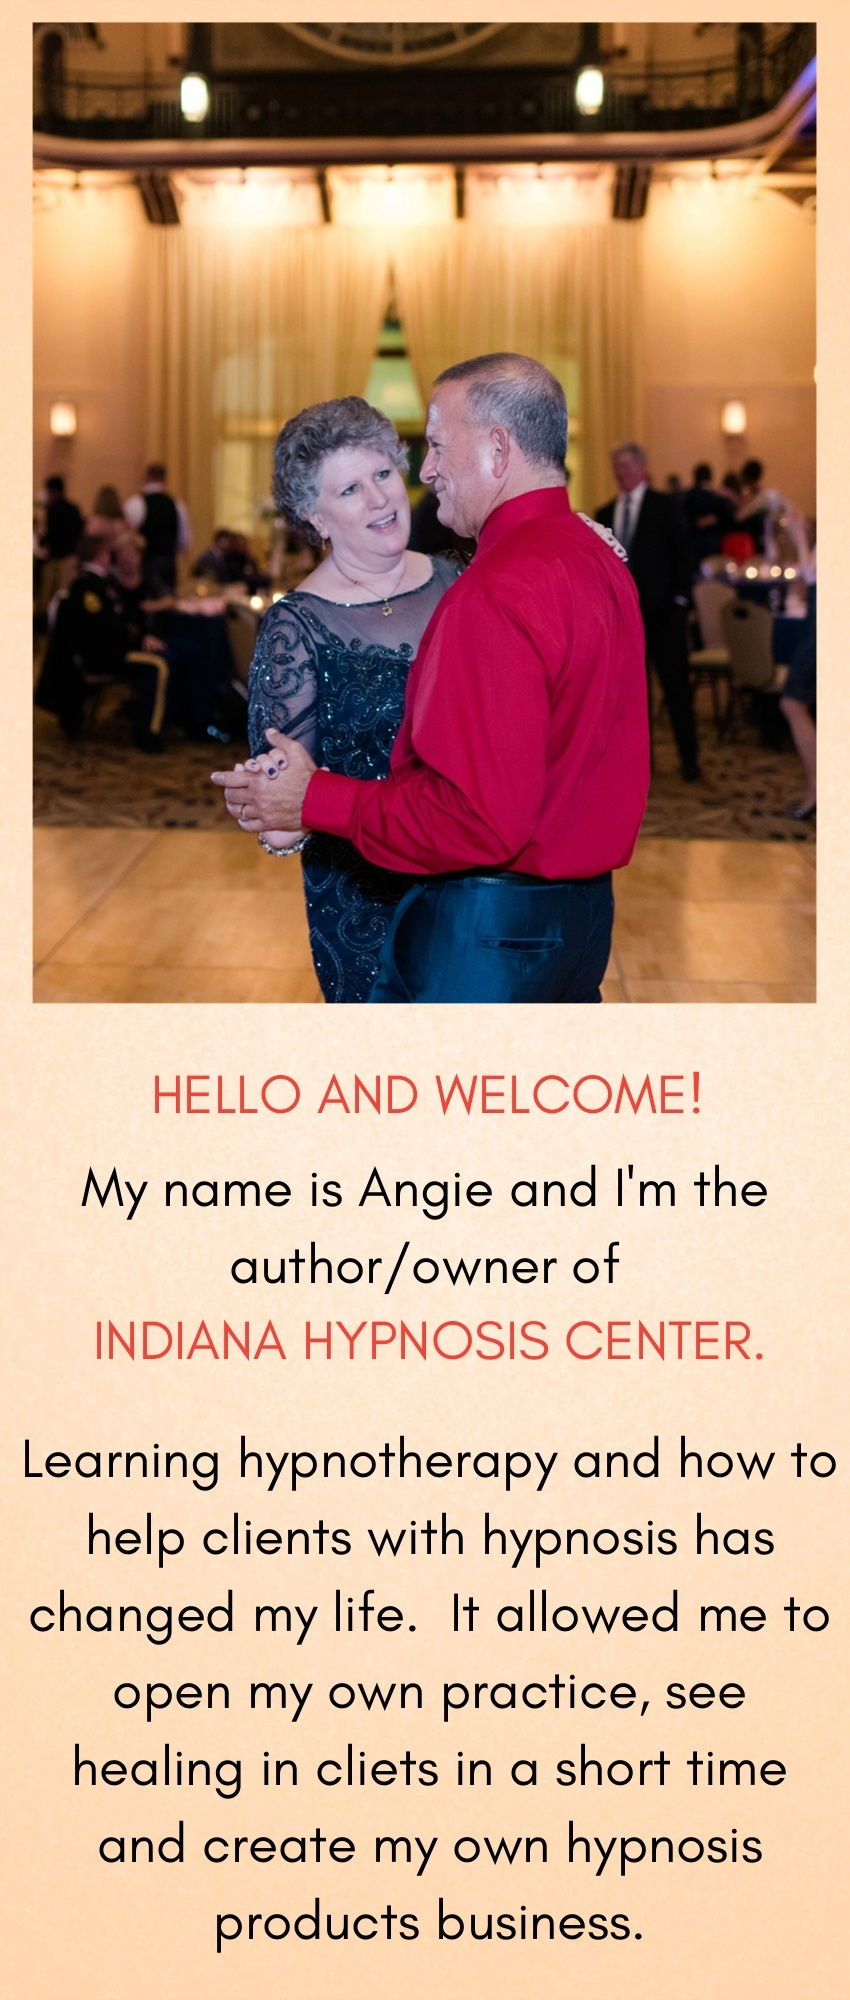 http://indianahypnosiscenter.com/about-angie/